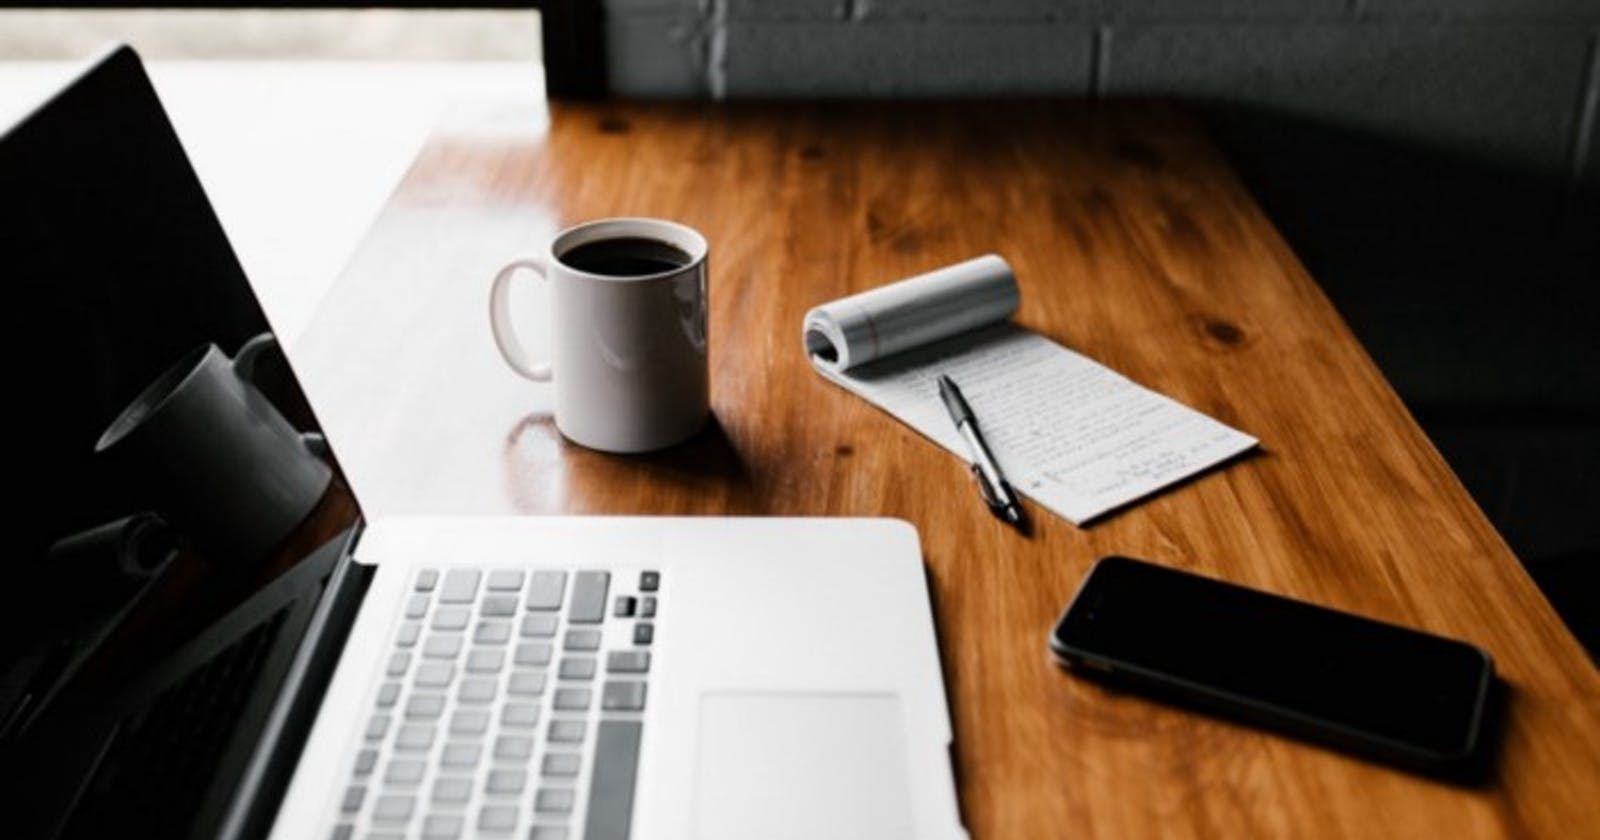 Kick start your freelancing career with these tips